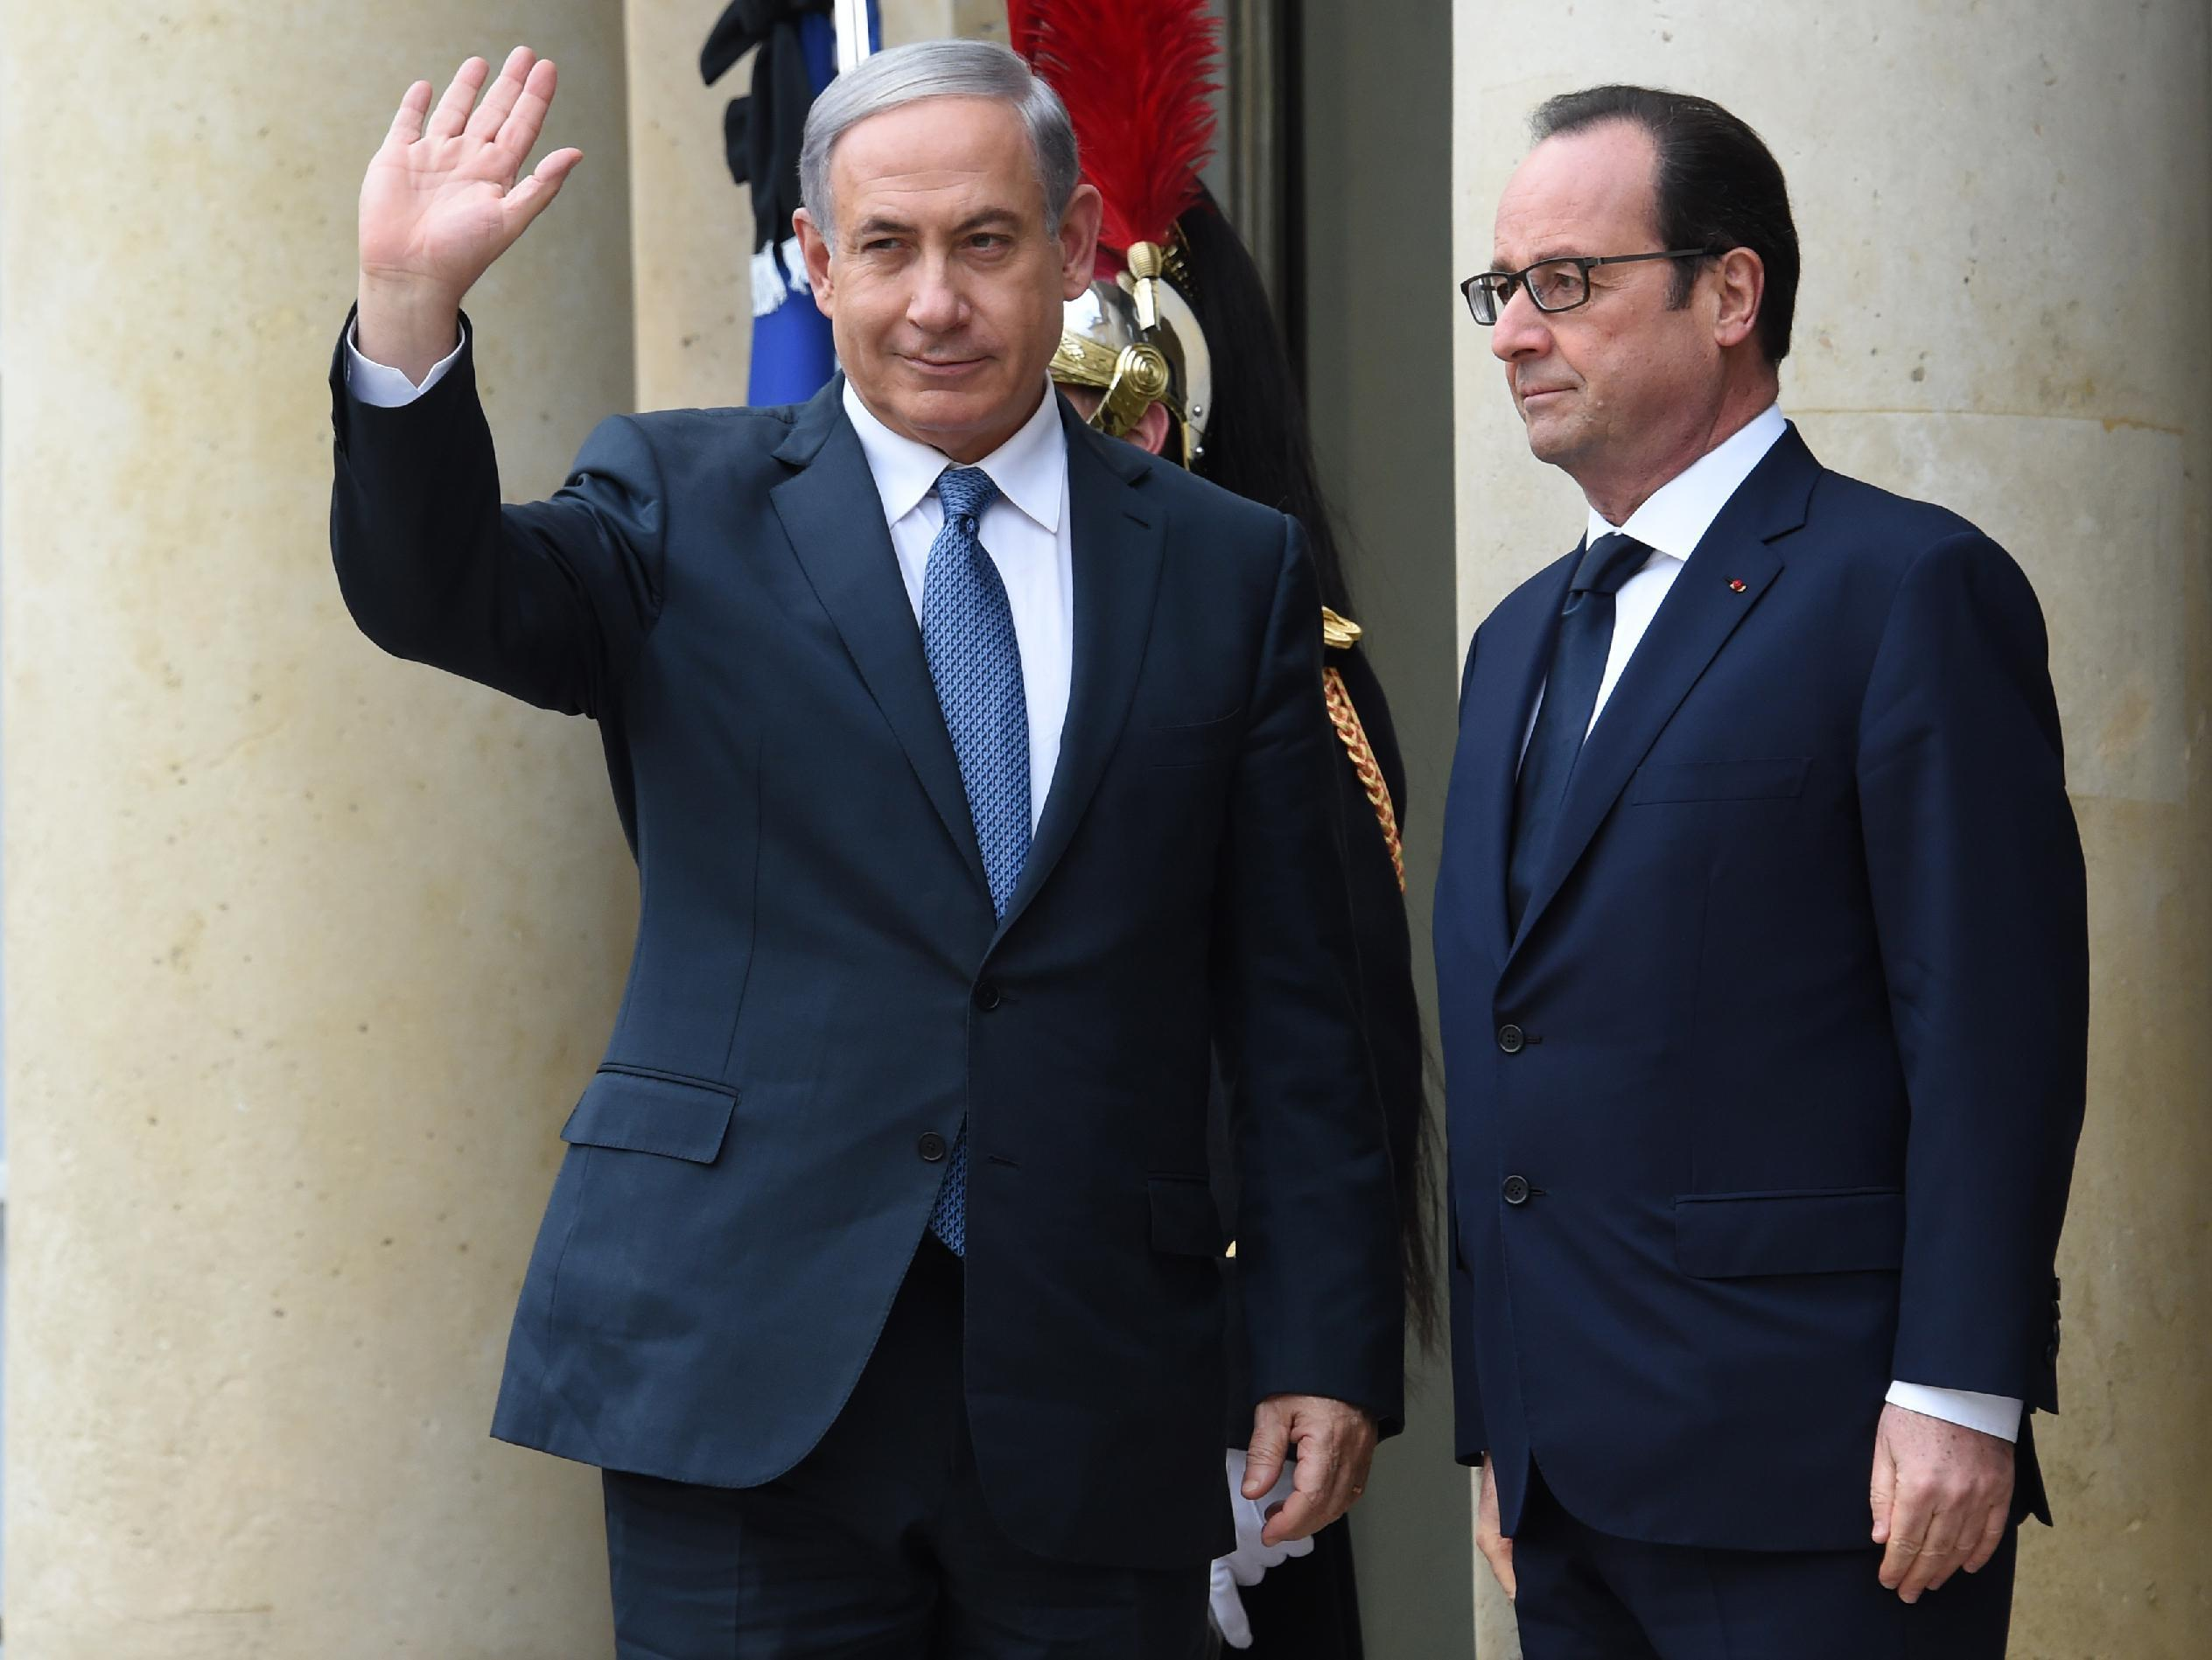 French President Francois Hollande (right) welcomes Benjamin Netanyahu to the Elysee Palace on January 11, 2015 before a rally in Paris in tribute to the 17 victims of attacks by Islamists (AFP Photo/Dominique Faget)